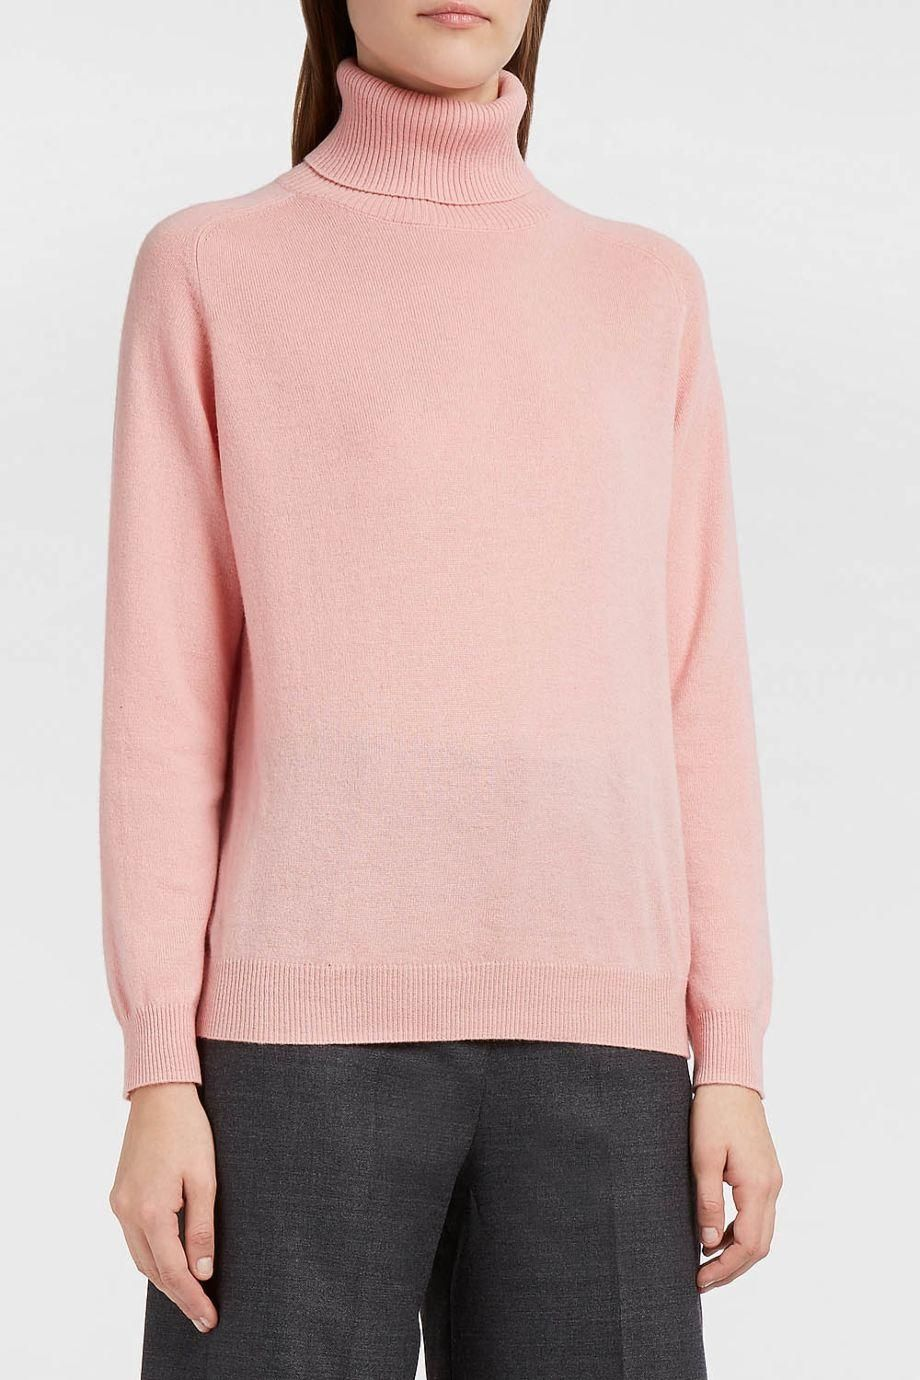 PAUL & JOE SISTER Auchaud Cashmere Polo Neck Jumper. #pauljoesister #cloth #